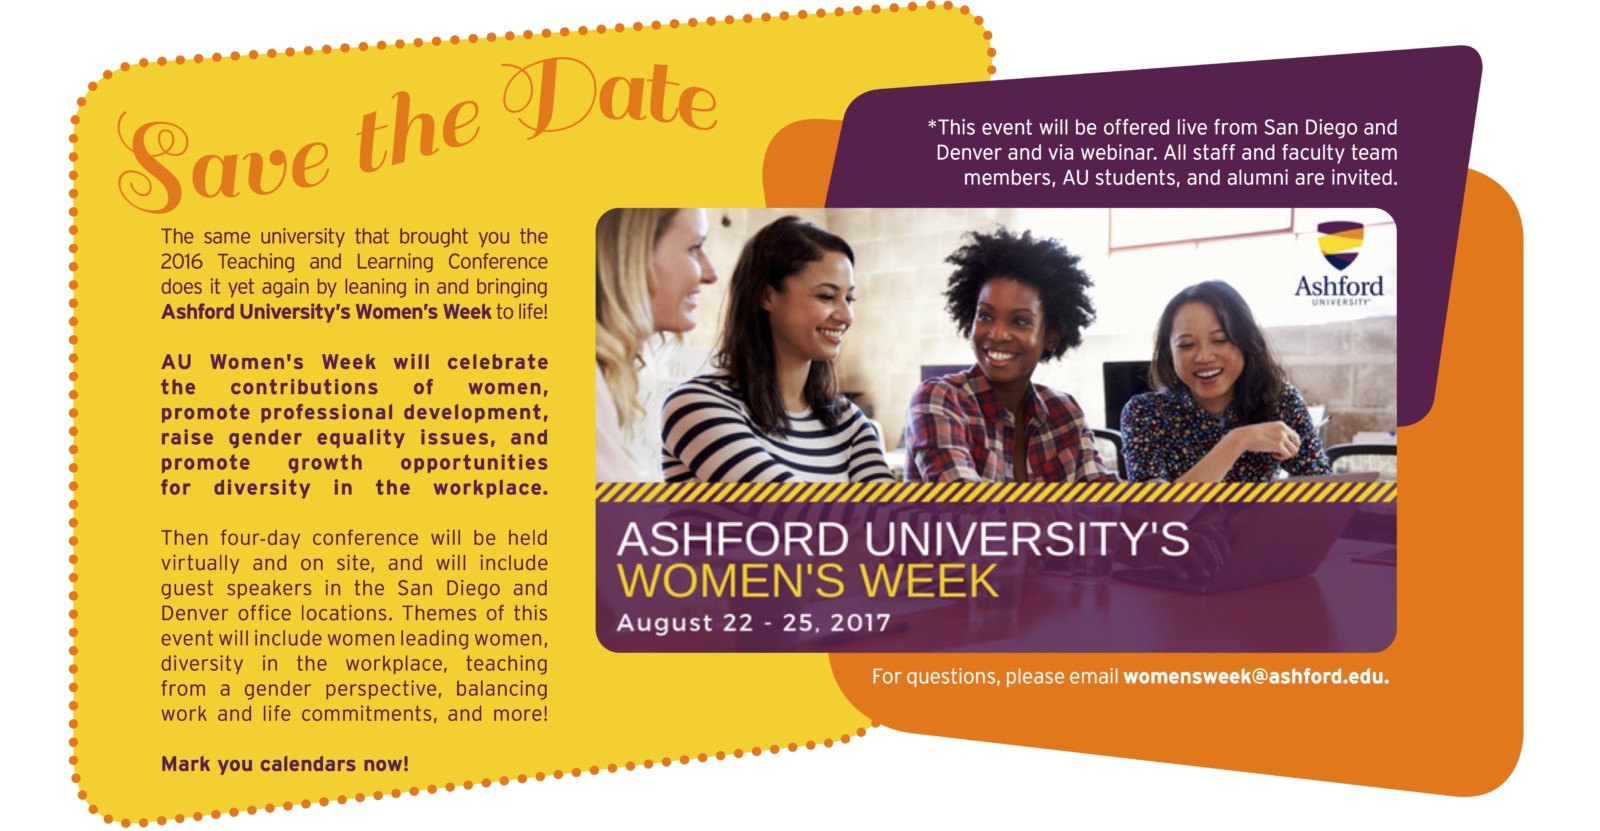 The same university that brought you the 2016 Teaching and Learning Conference does it yet again by leaning in and bringing Ashford University's Women's Week to life! AU Women's Week will celebrate the contributions of women, promote professional development, raise gender equality issues, and promote growth opportunities for diversity in the workplace. Then four-day conference will be held virtually and on site, and will include guest speakers in the San Diego and Denver office locations. Themes of this event will include women leading women, diversity in the workplace, teaching from a gender perspective, balancing work and life commitments, and more! Mark you calendars now! *This event will be offered live from San Diego and Denver and via webinar. All staff and faculty team members, AU students, and alumni are invited. For questions, please email womensweek@ashford.edu.